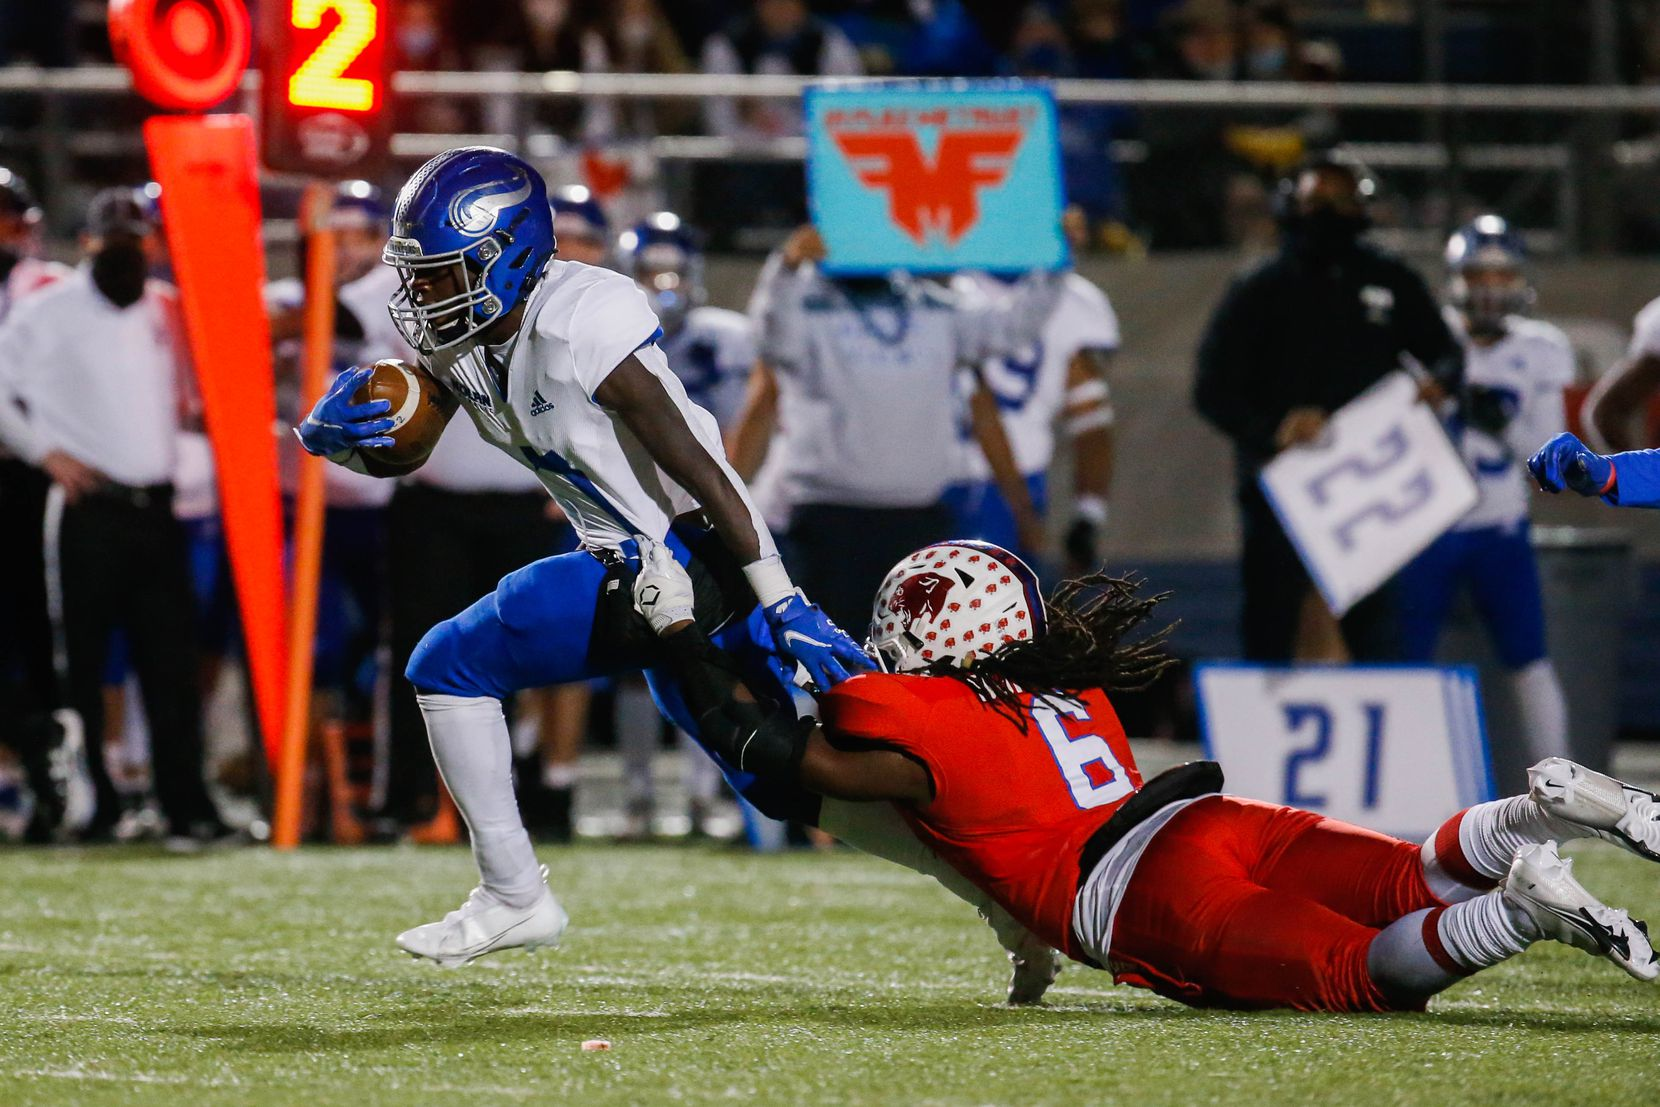 Fort Worth Nolan's Irene Ngabonziza (7) is grabbed by Parish Episcopal's Kenneth Borders (6) during the fourth quarter of a TAPPS Division I state football championship game against  at Panther Stadium in Waco on Saturday, Dec. 12, 2020. (Juan Figueroa/ The Dallas Morning News)